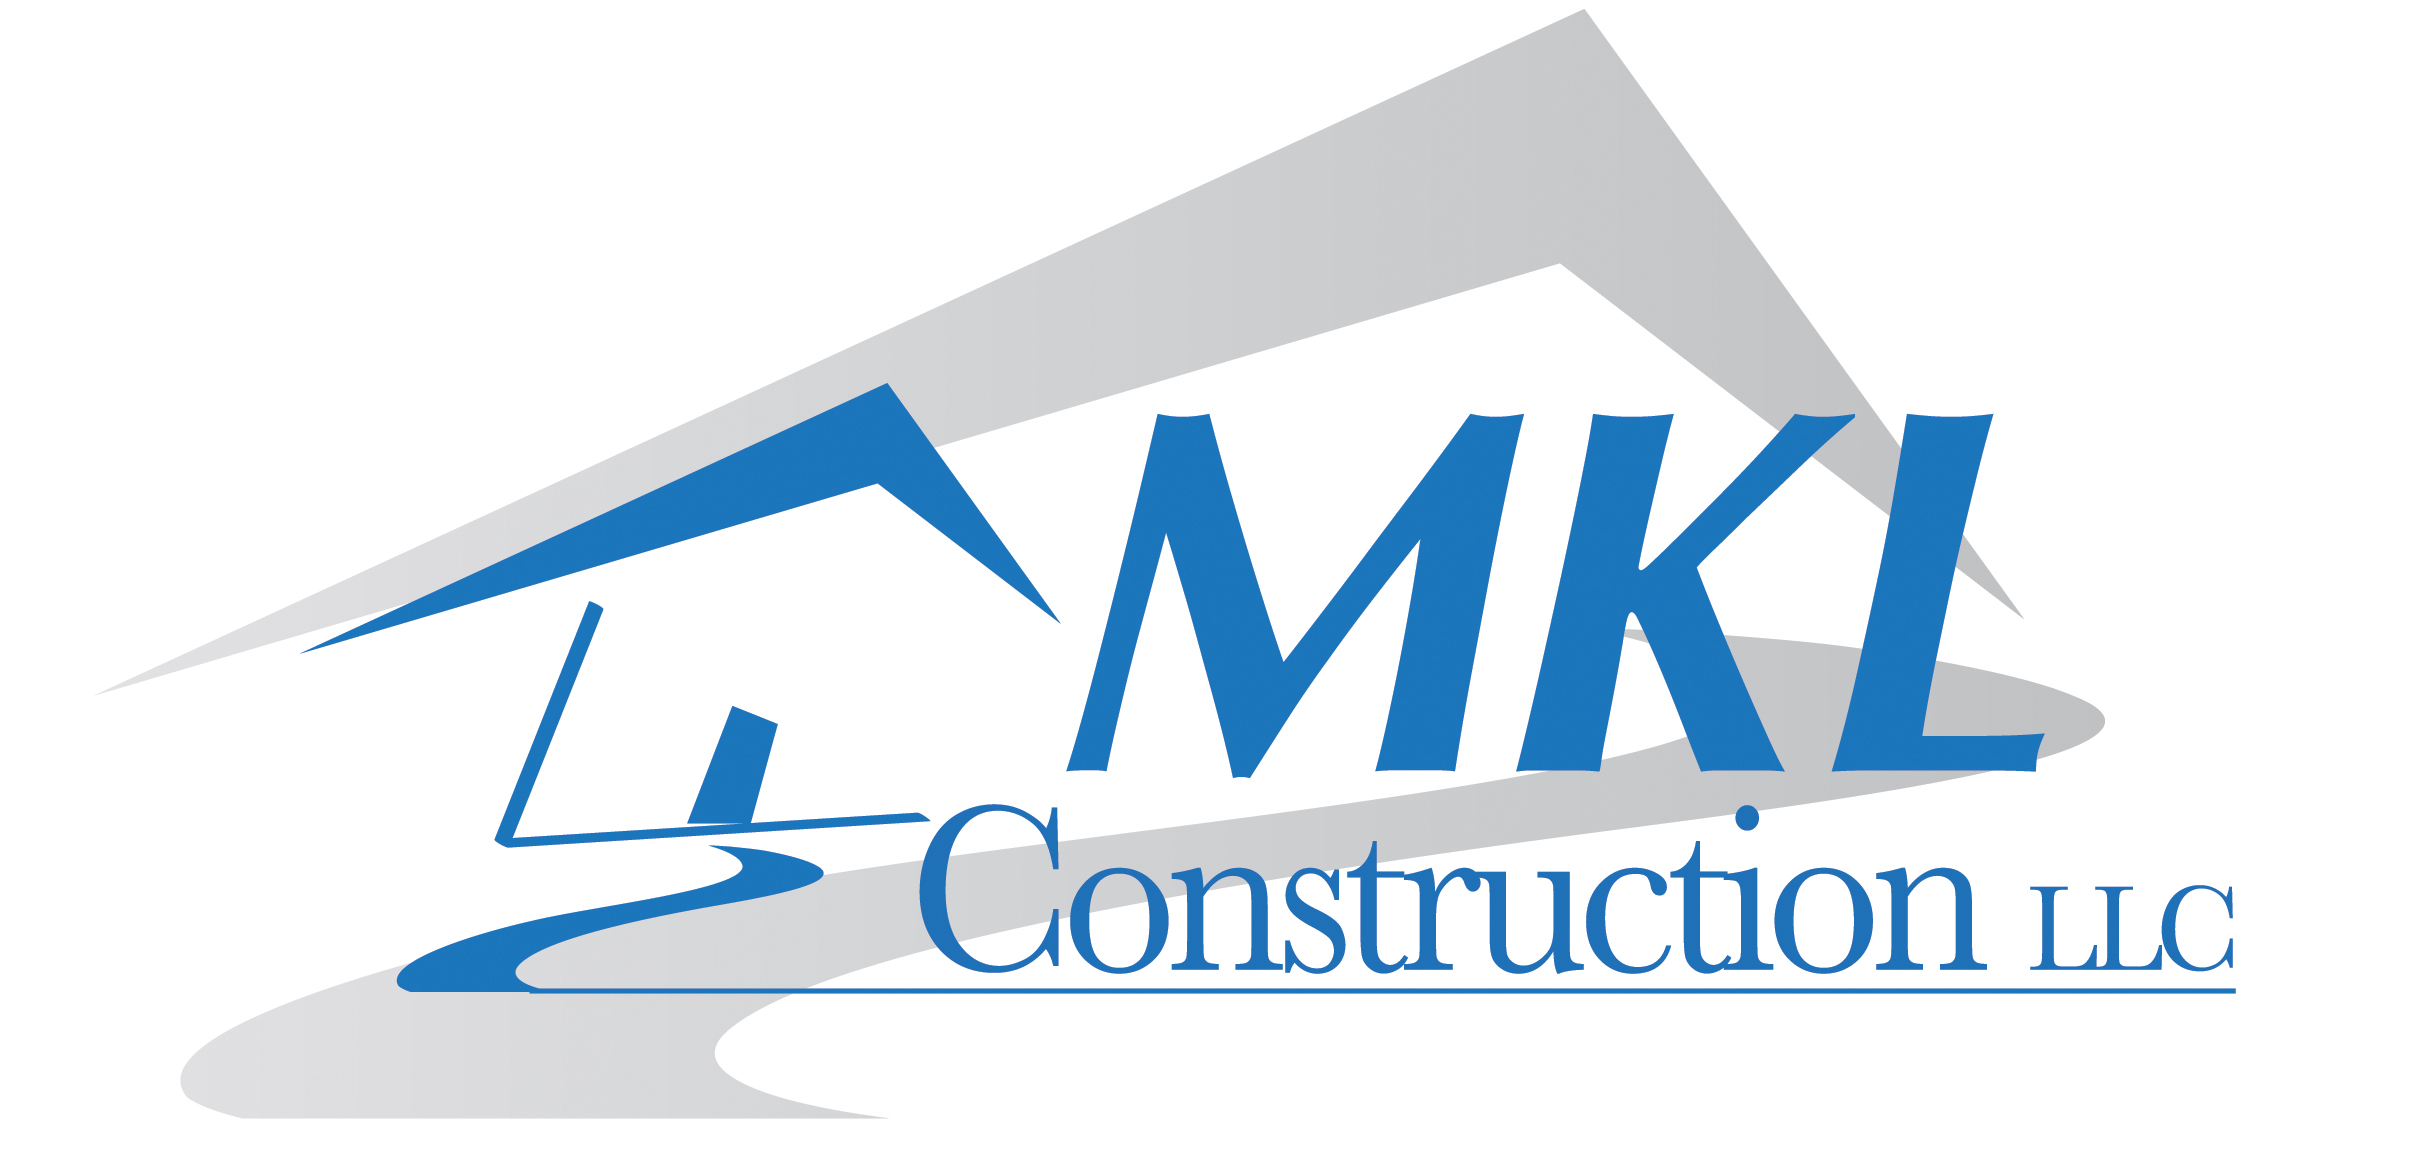 MKL Construction LLC